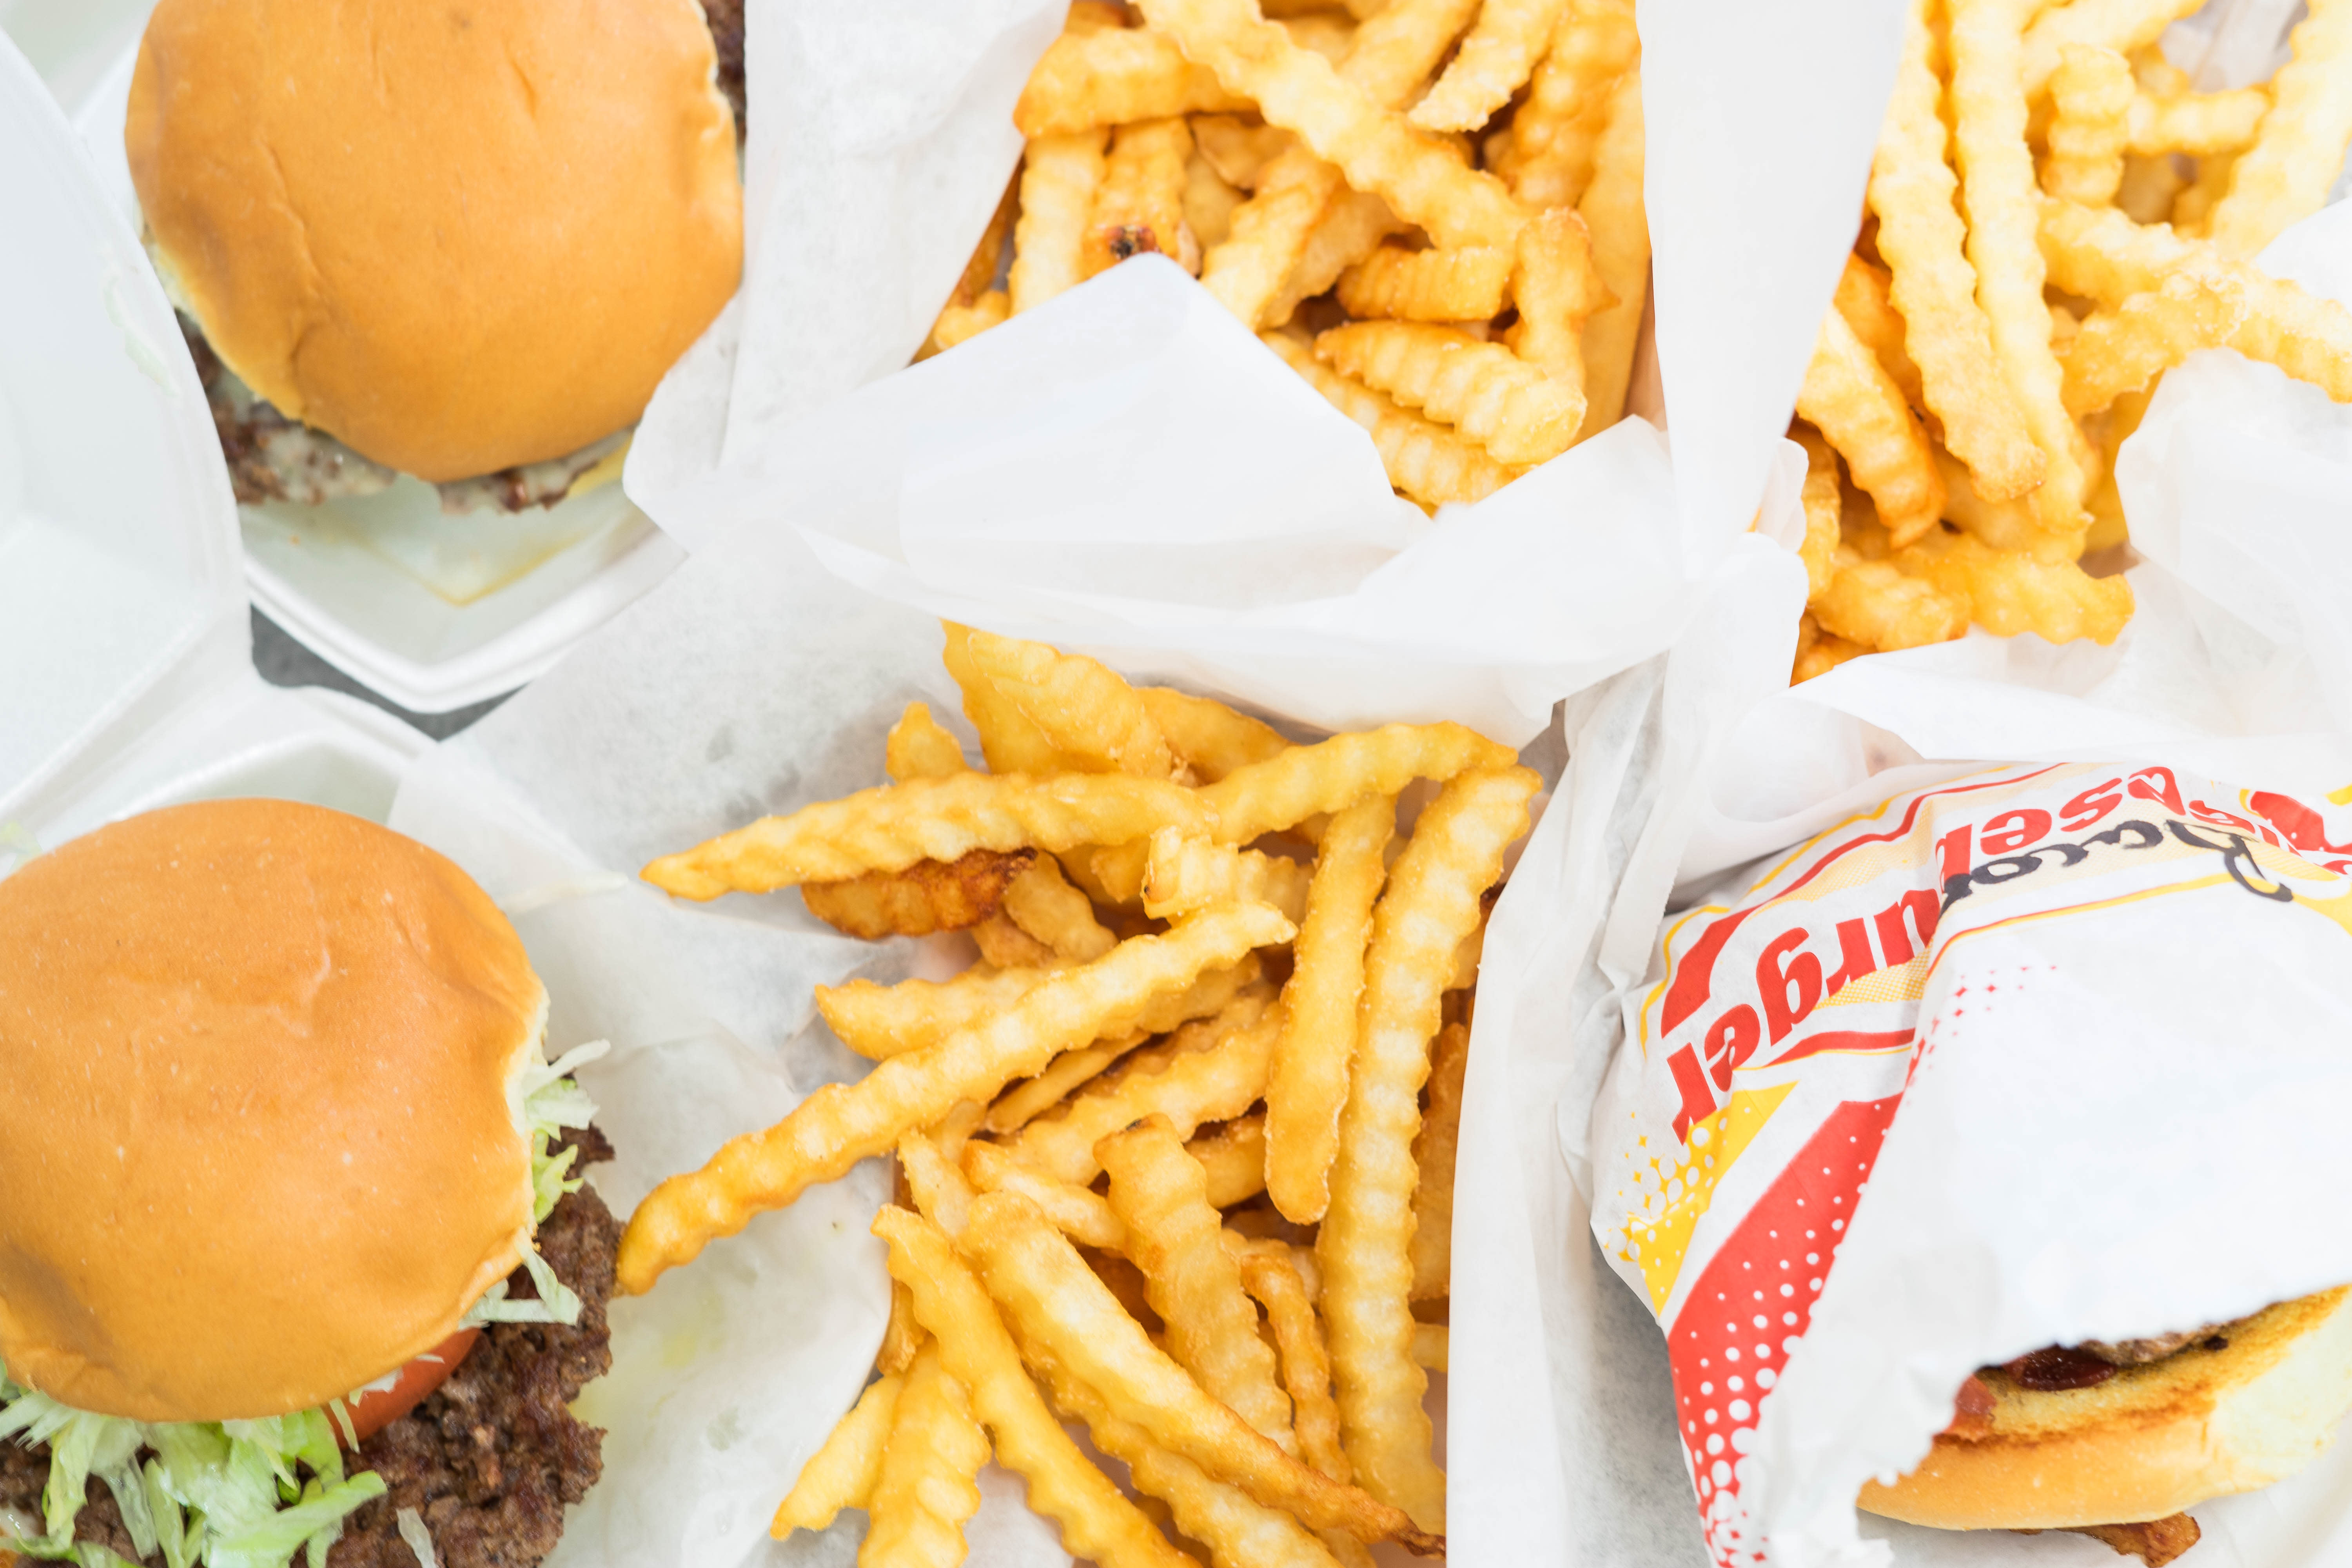 Plate of burgers and fries at Wagner's Drive-In